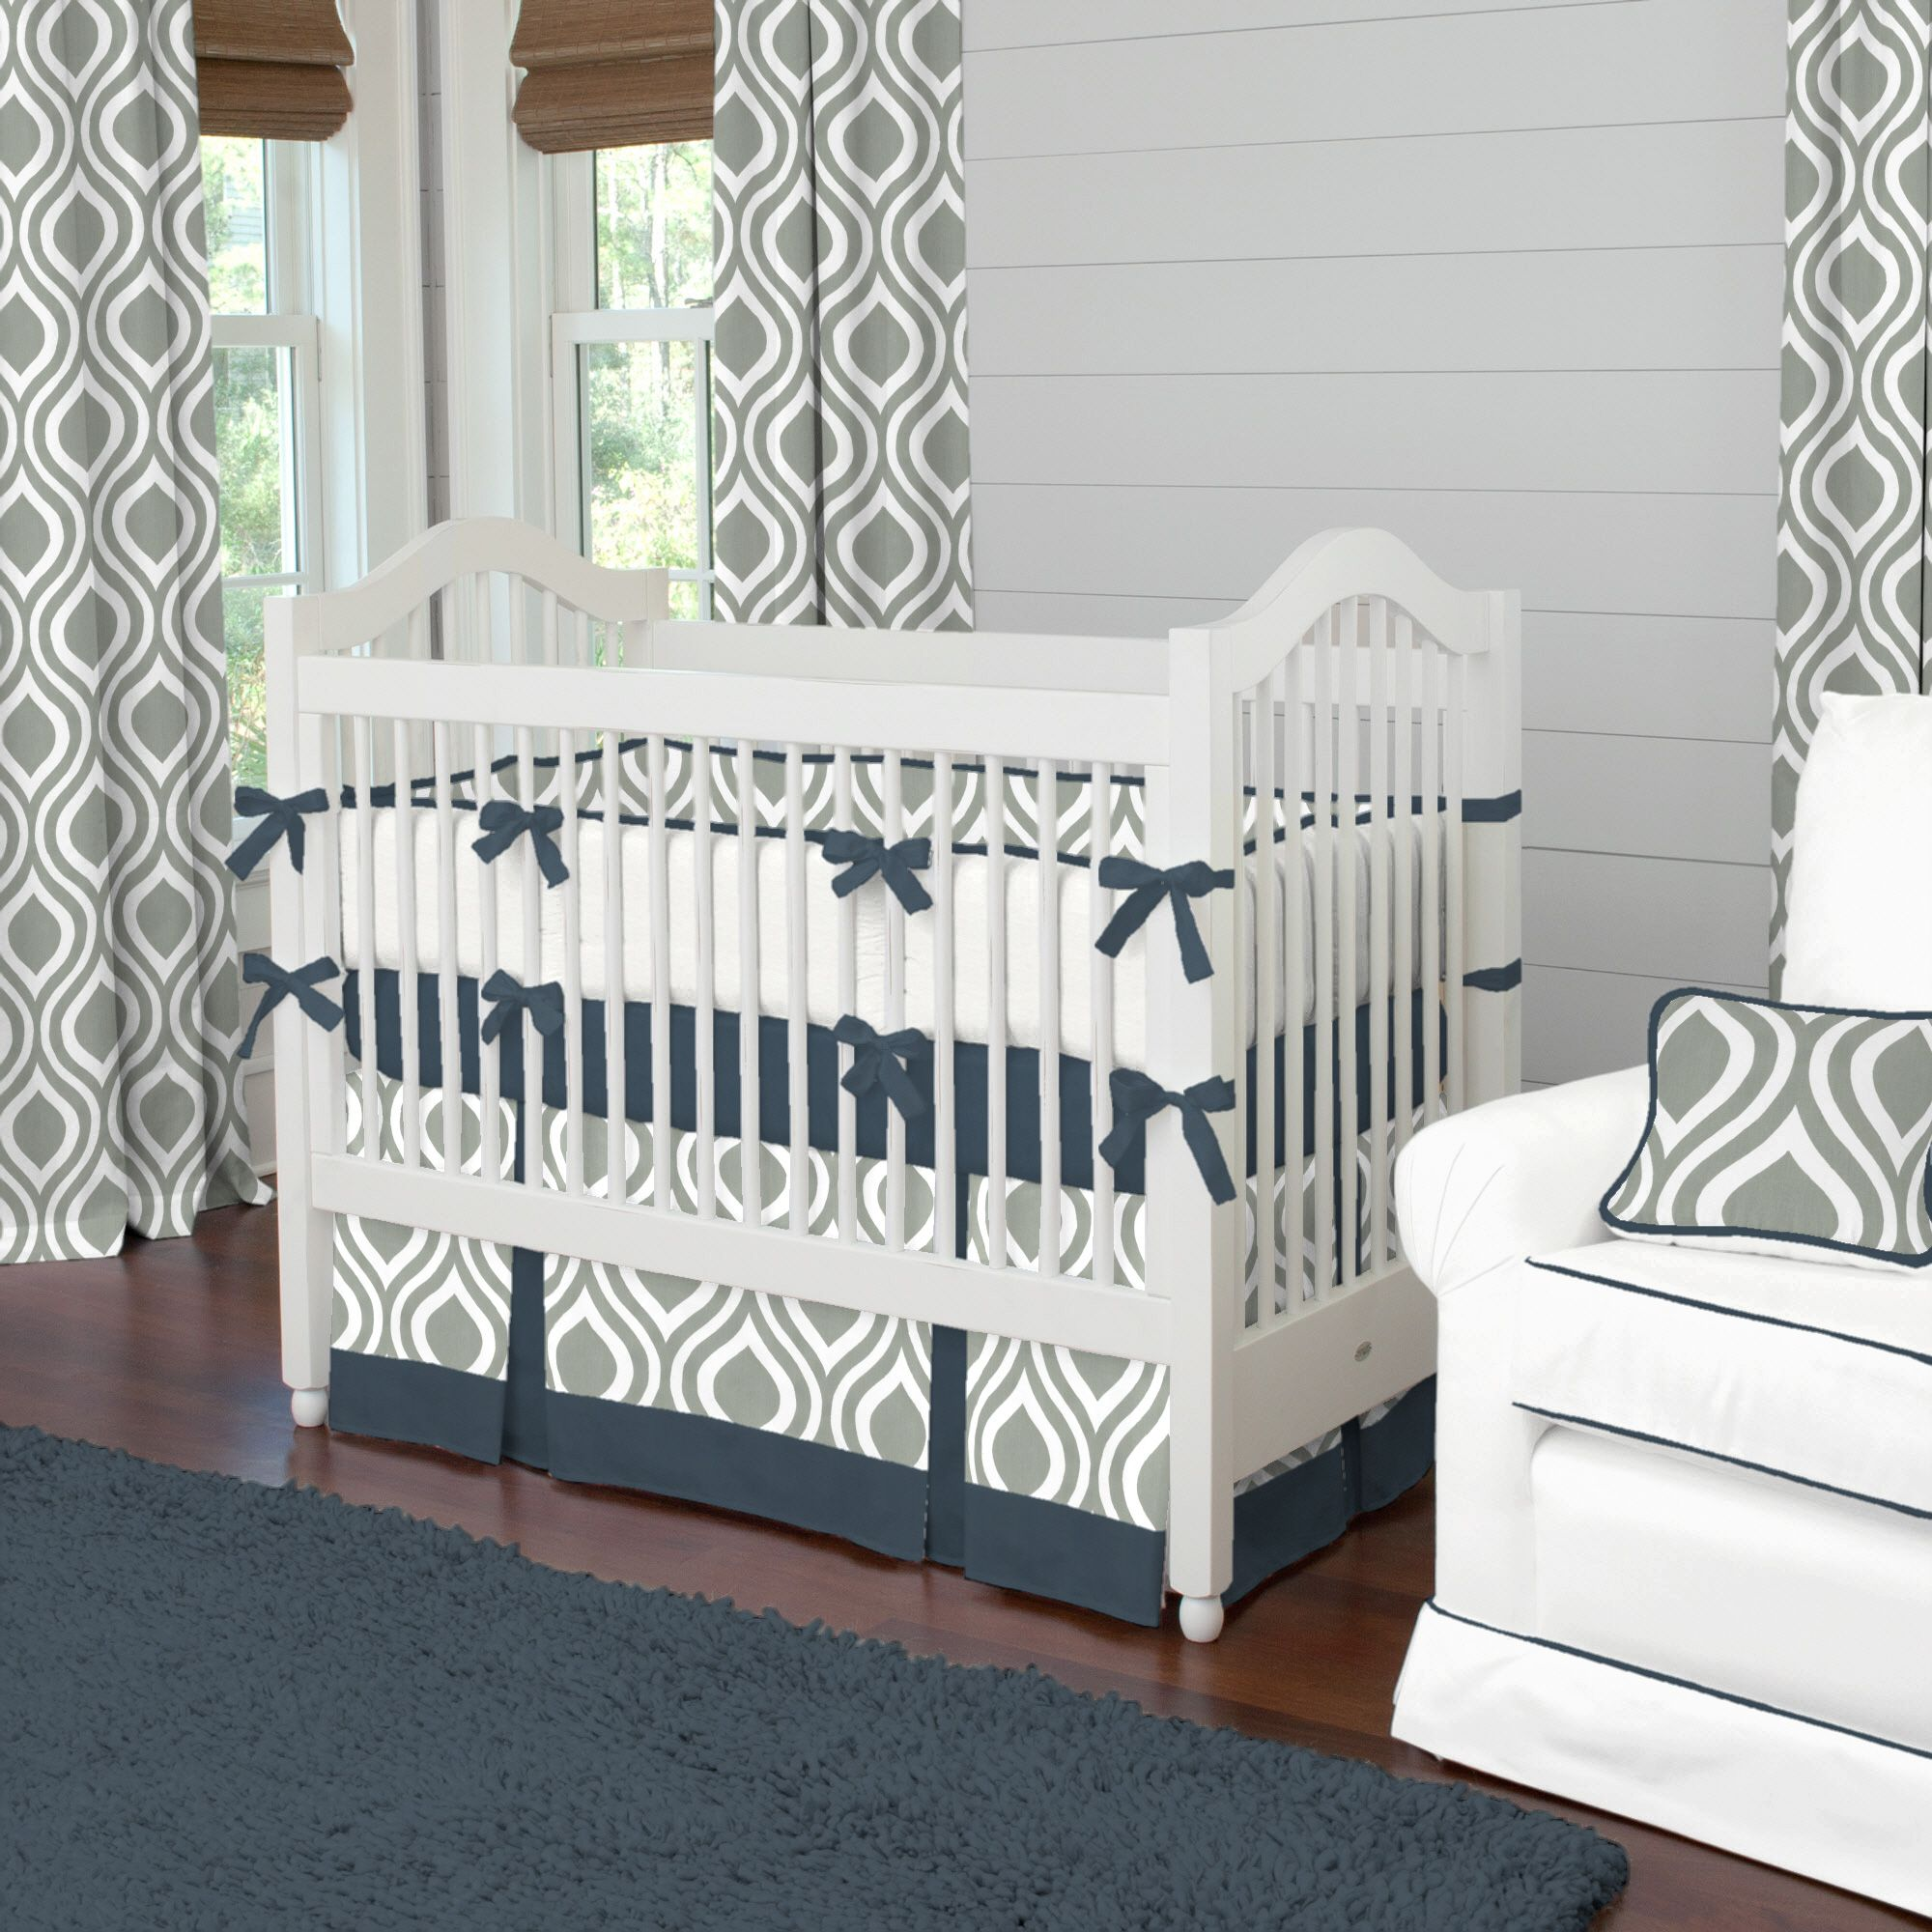 crib shop safety when centennial gray what buying to styles incredible for look cribs light classic standards summer first on sales your chesapeake